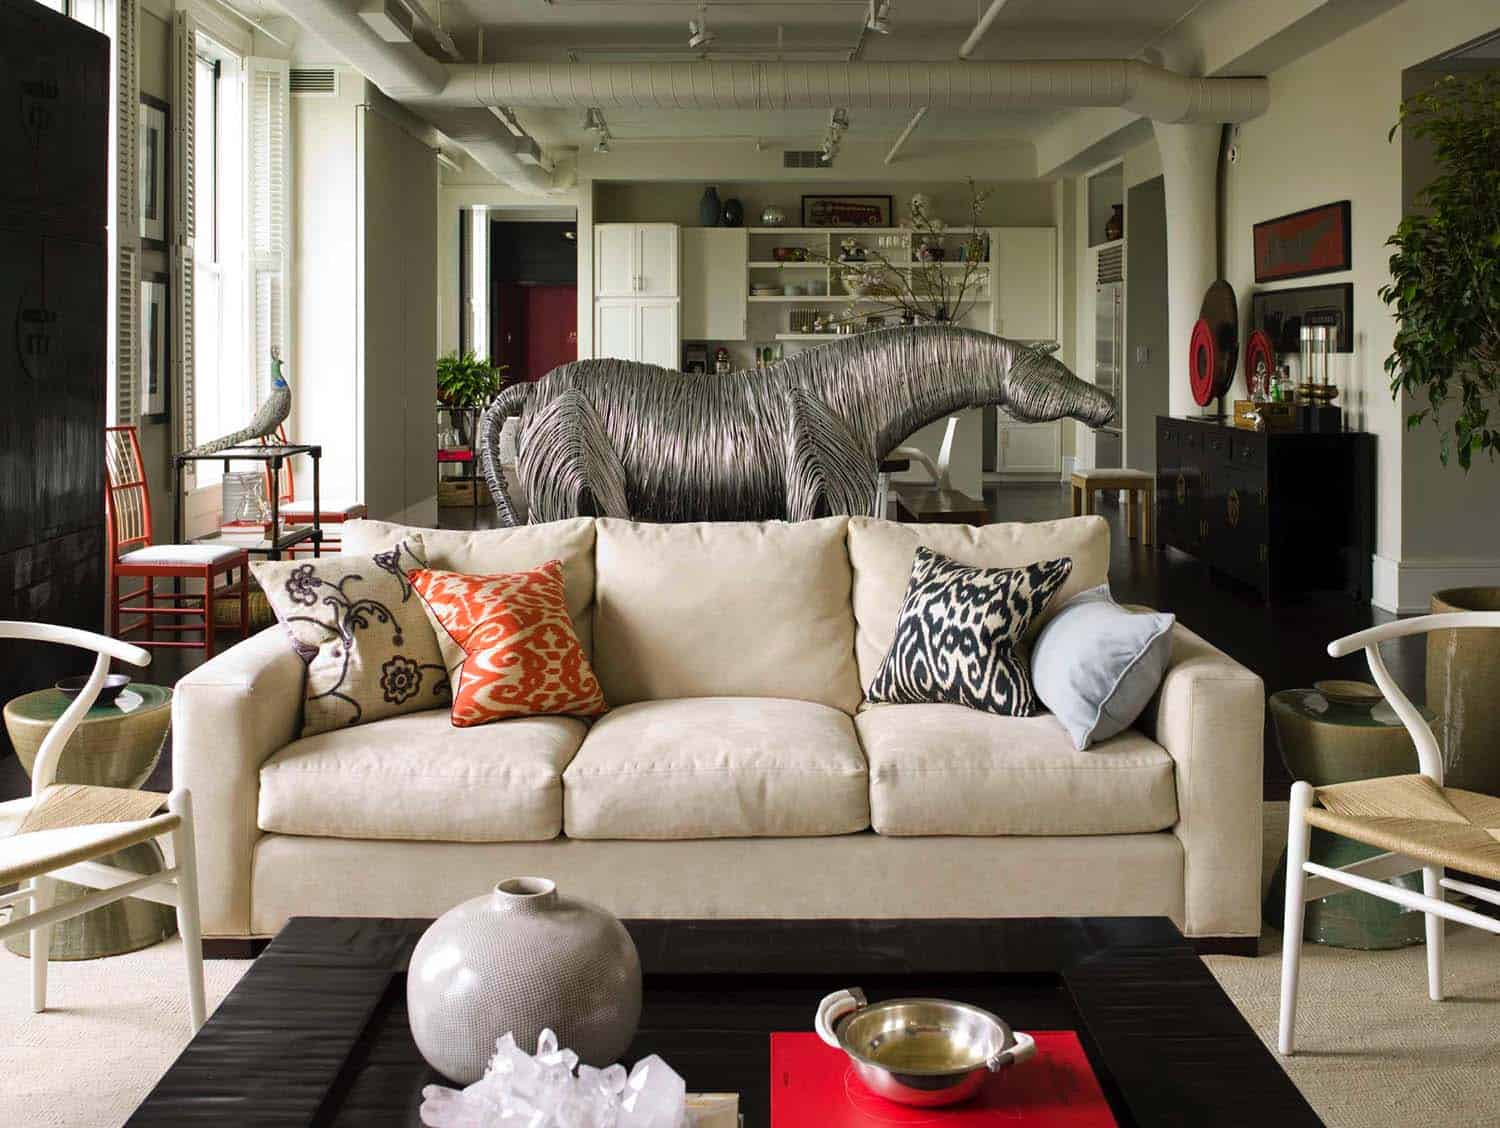 Noho Loft Design-Thom Filicia-10-1 Kindesign